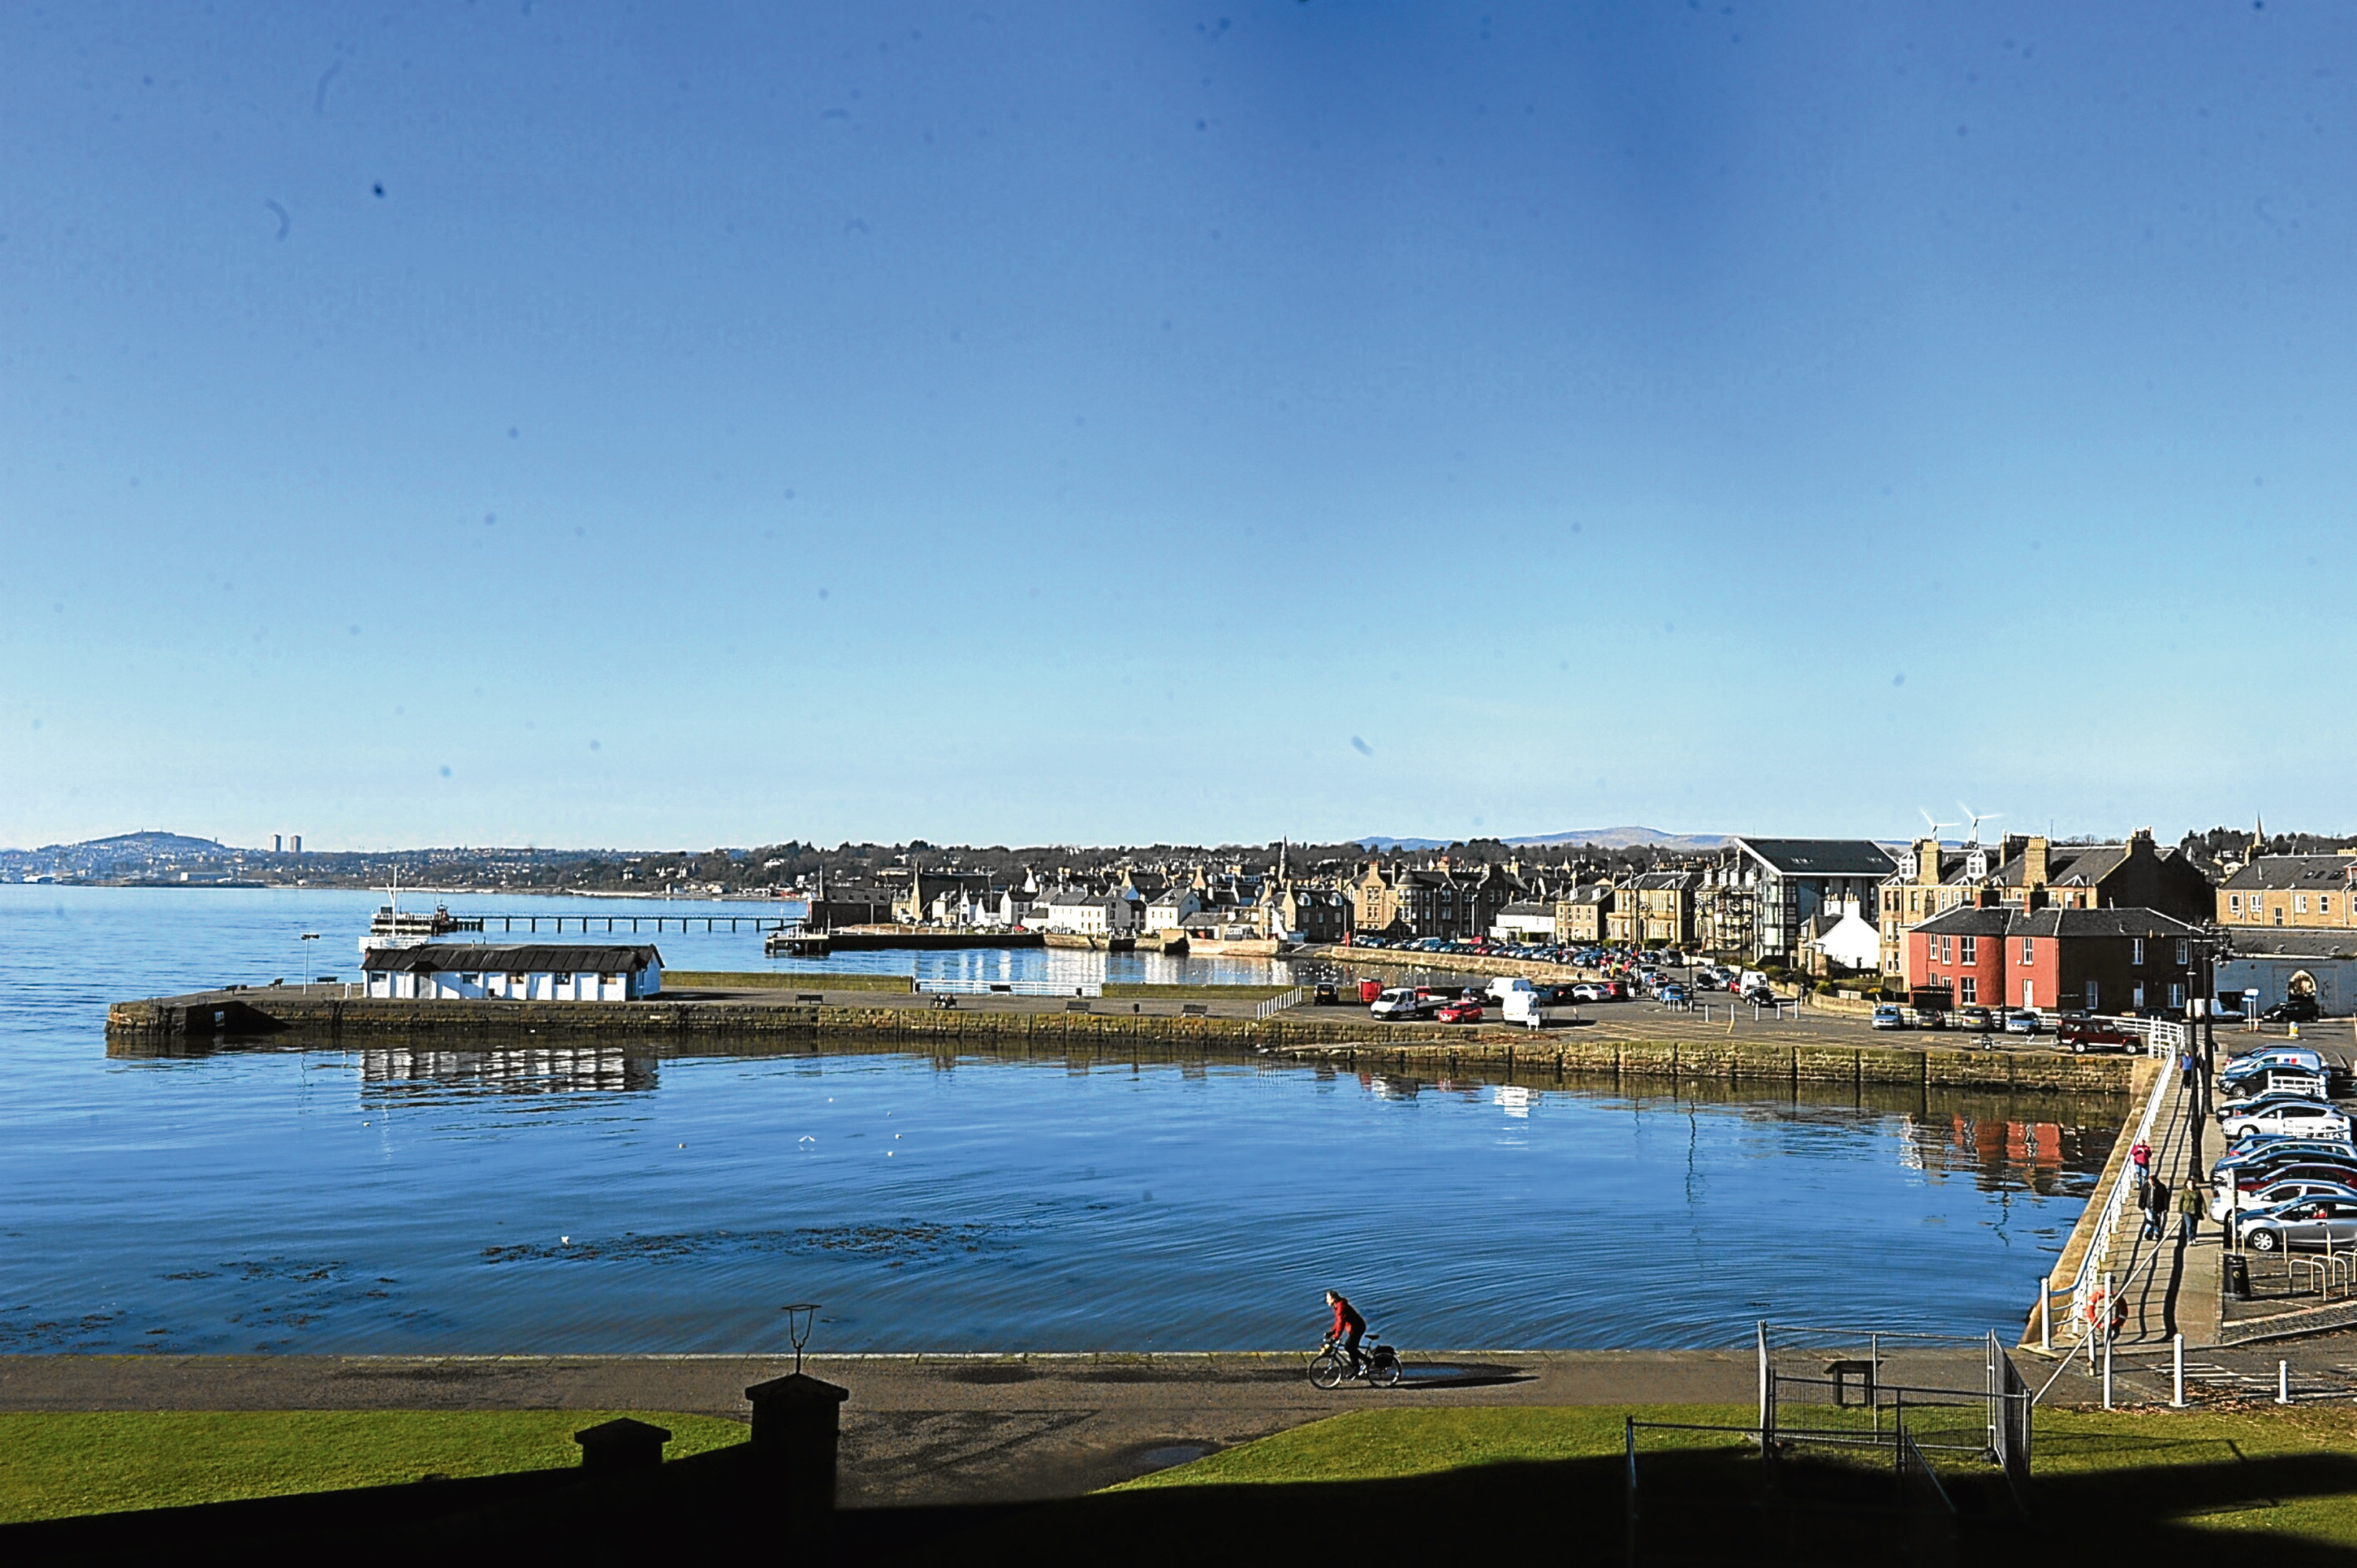 Plans are in place to restore Broughty Ferry's reputation as a picturesque riverside resort.